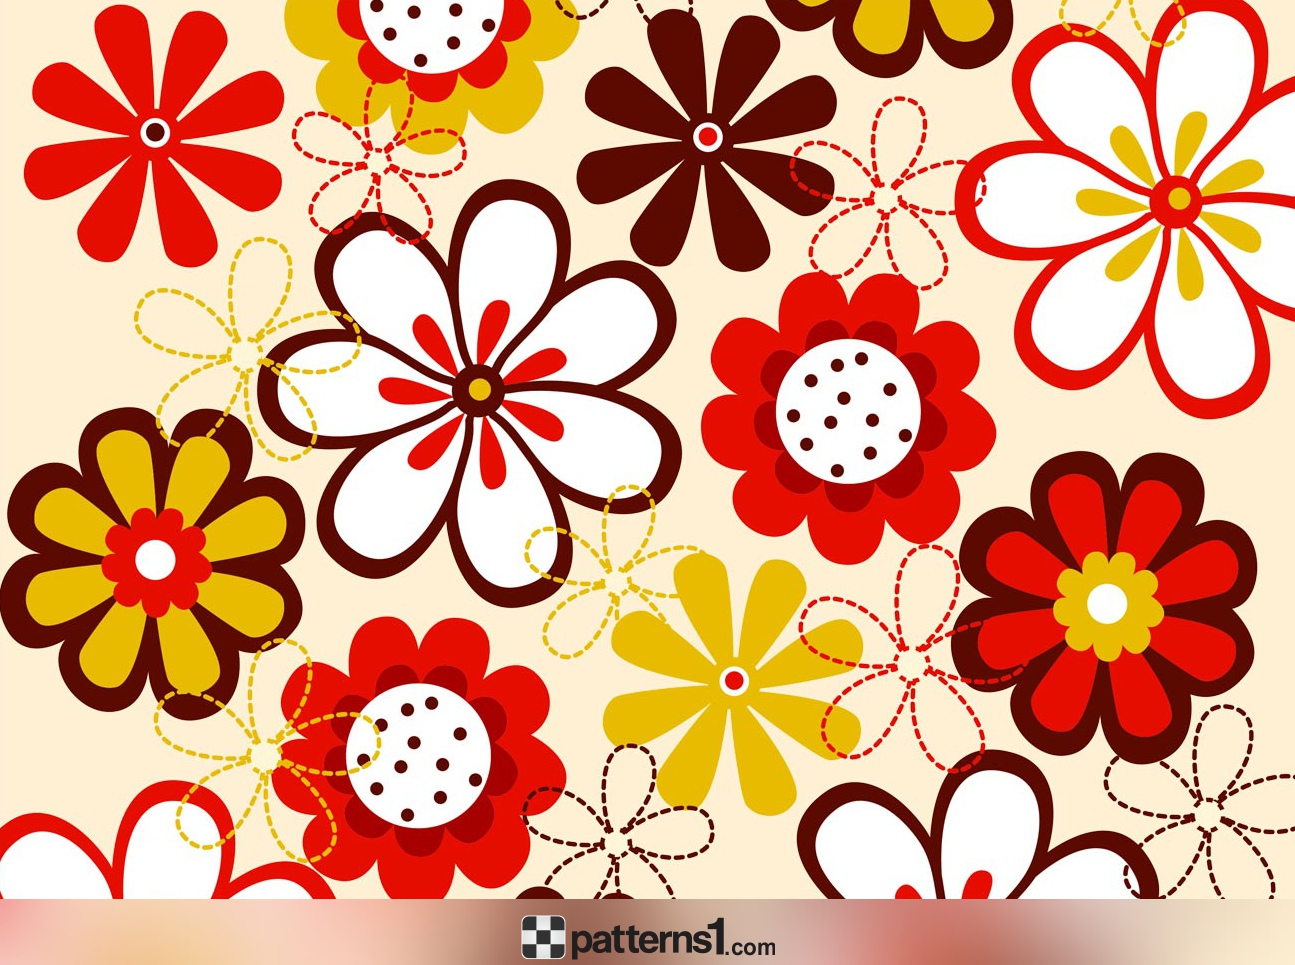 Clipart background patterns picture download Clipart background patterns - ClipartFest picture download